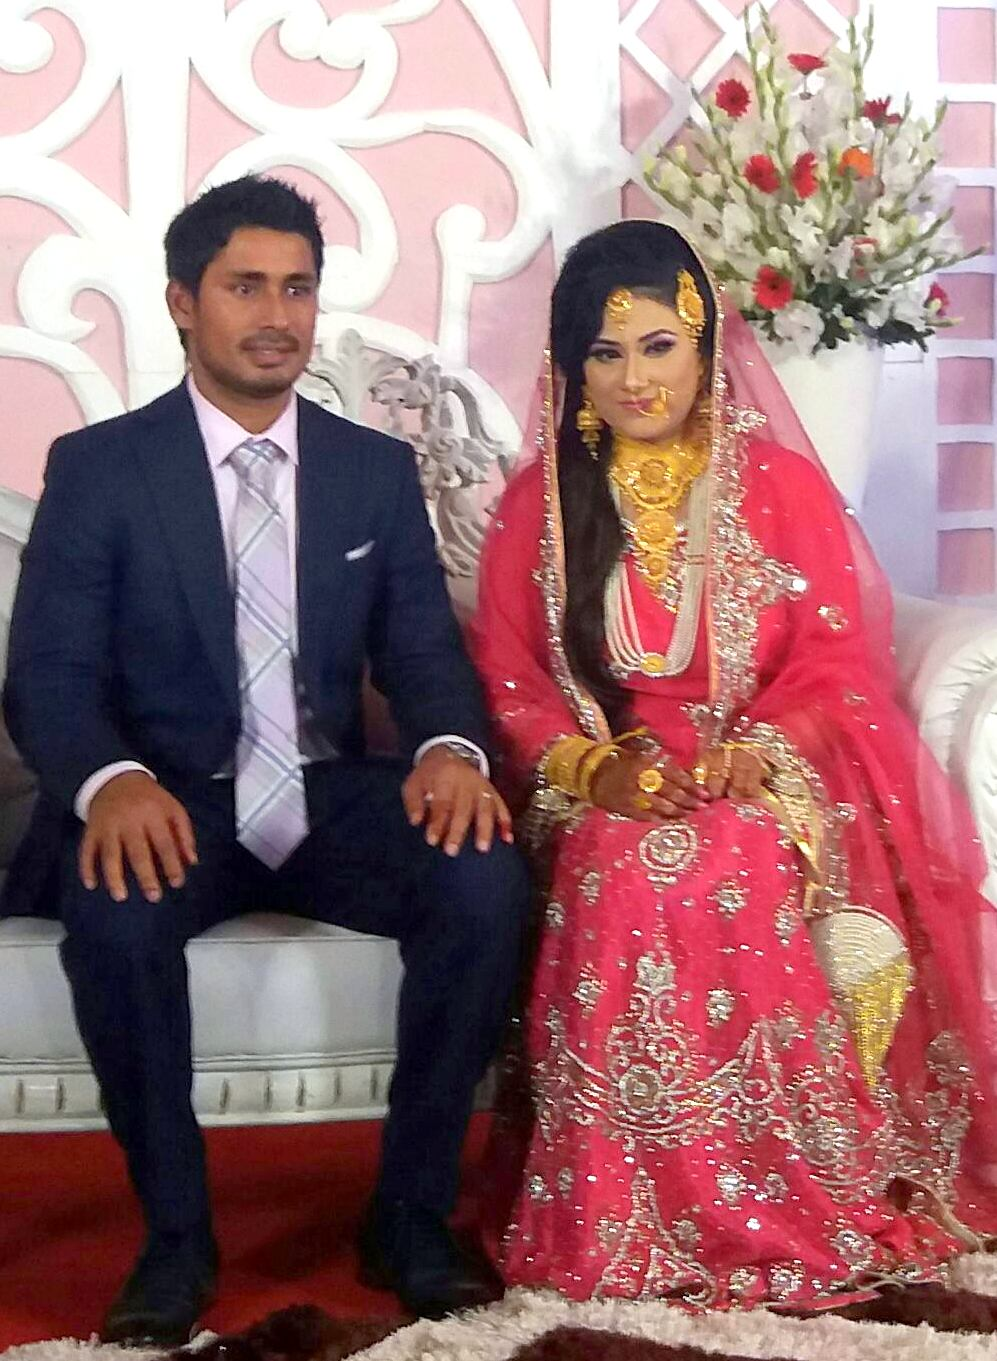 Mohammad ashraful bangladeshi cricketer with his wife anika tasnim orchi